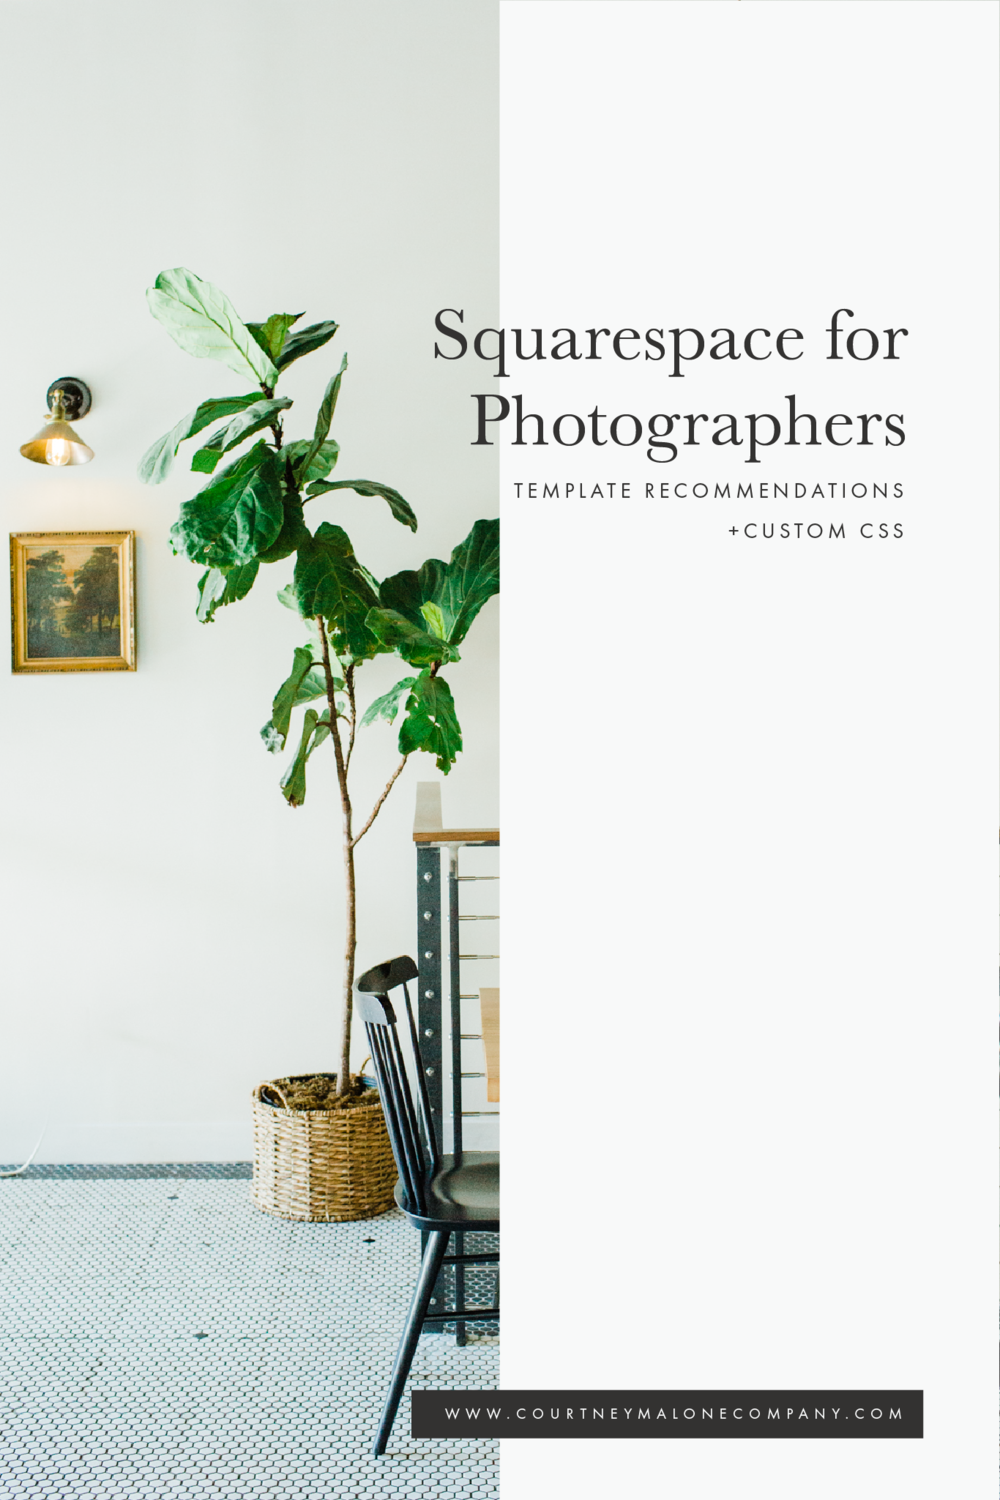 Squarespace for Photographers Guide